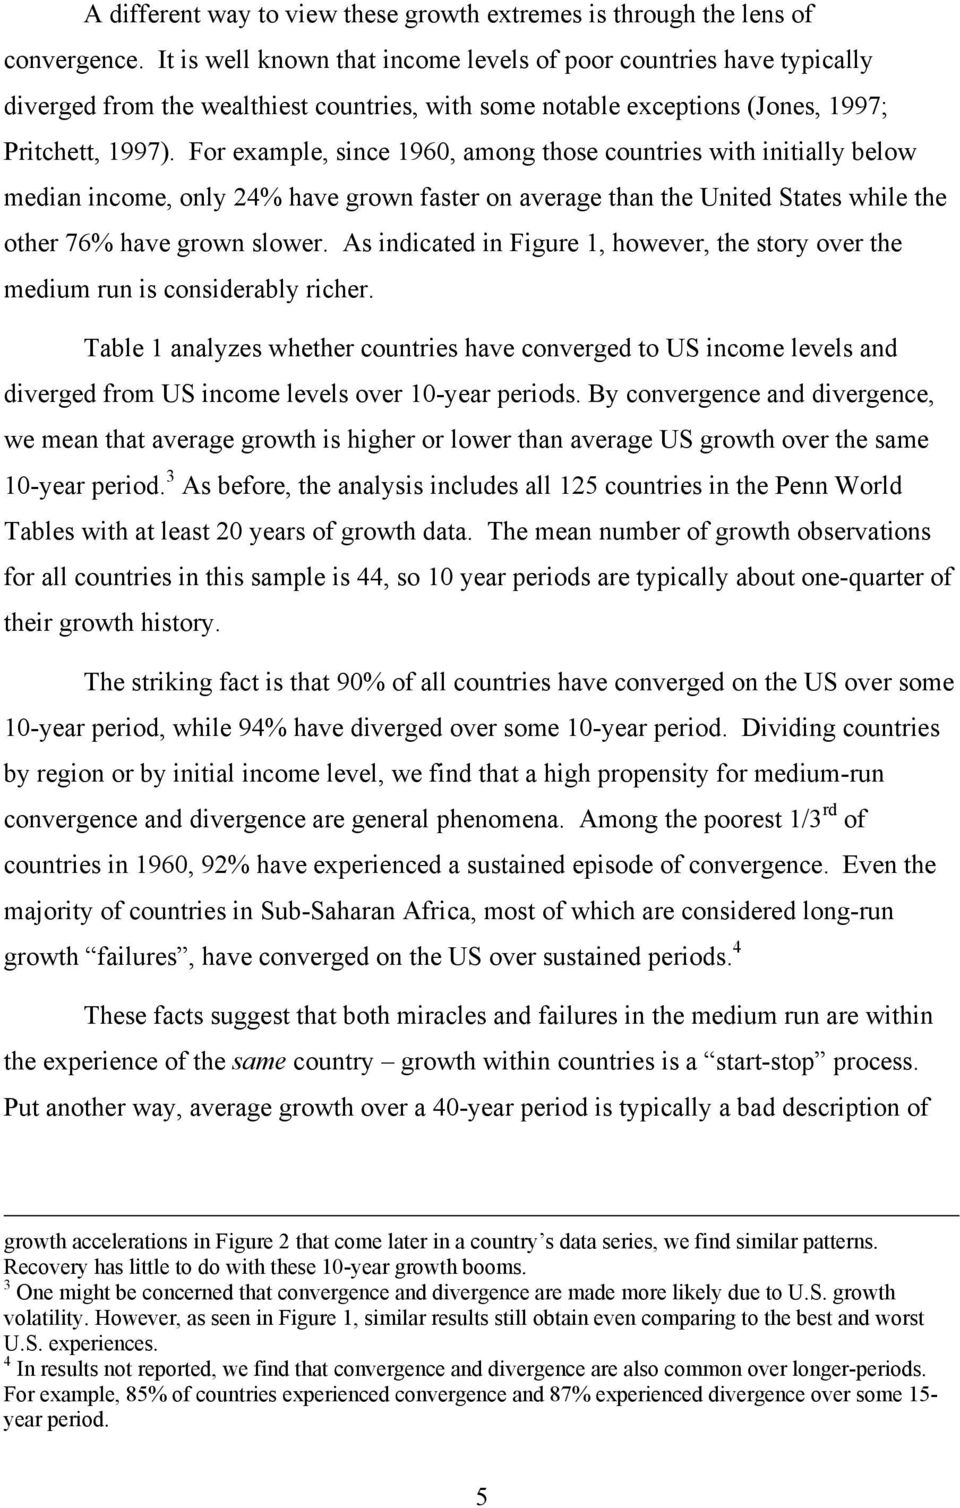 For example, since 1960, among those countries with initially below median income, only 24% have grown faster on average than the United States while the other 76% have grown slower.